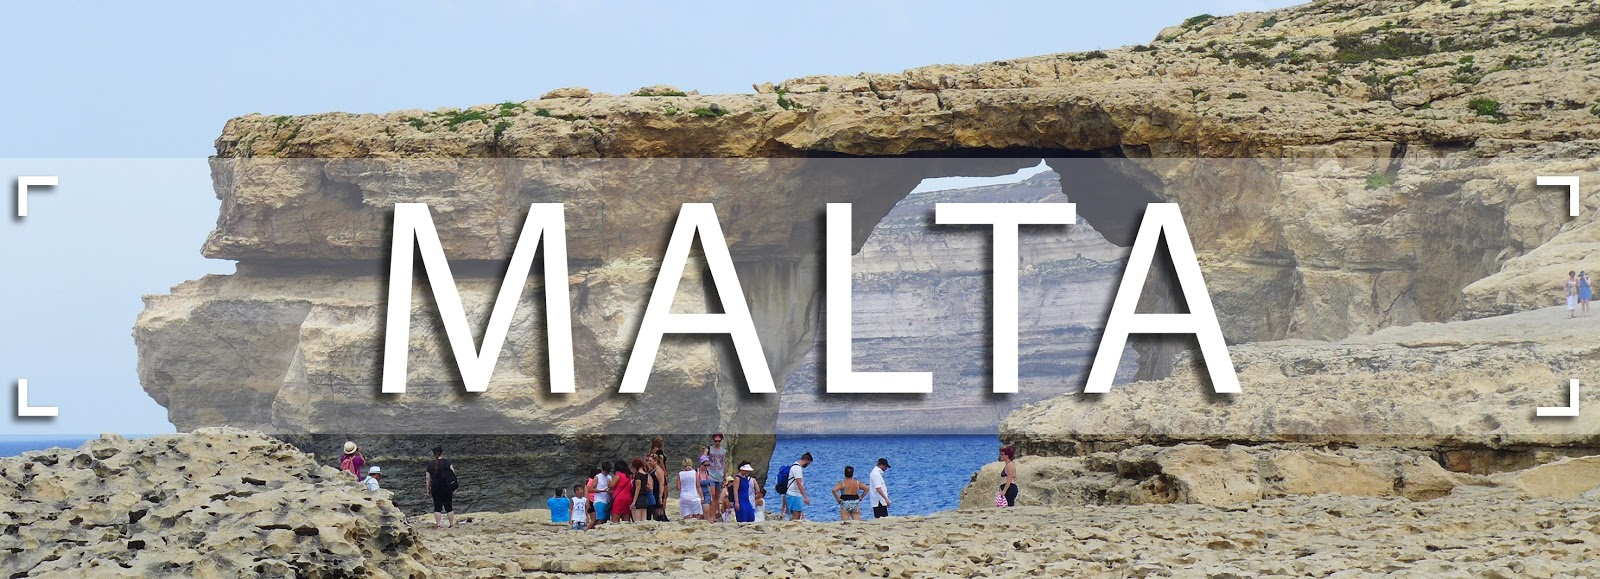 Destination: Malta